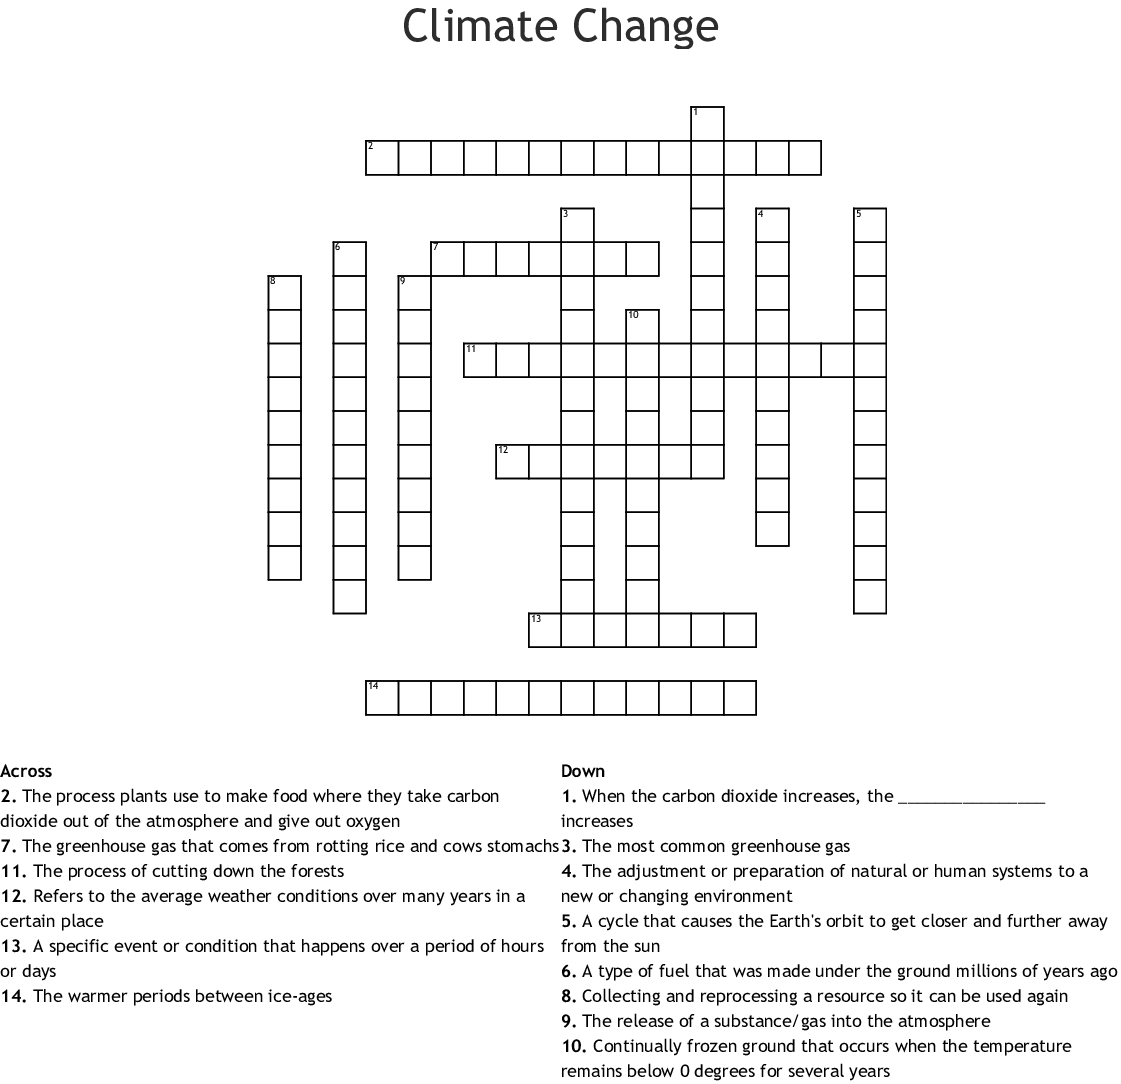 Global Warming Crossword Puzzle Printable